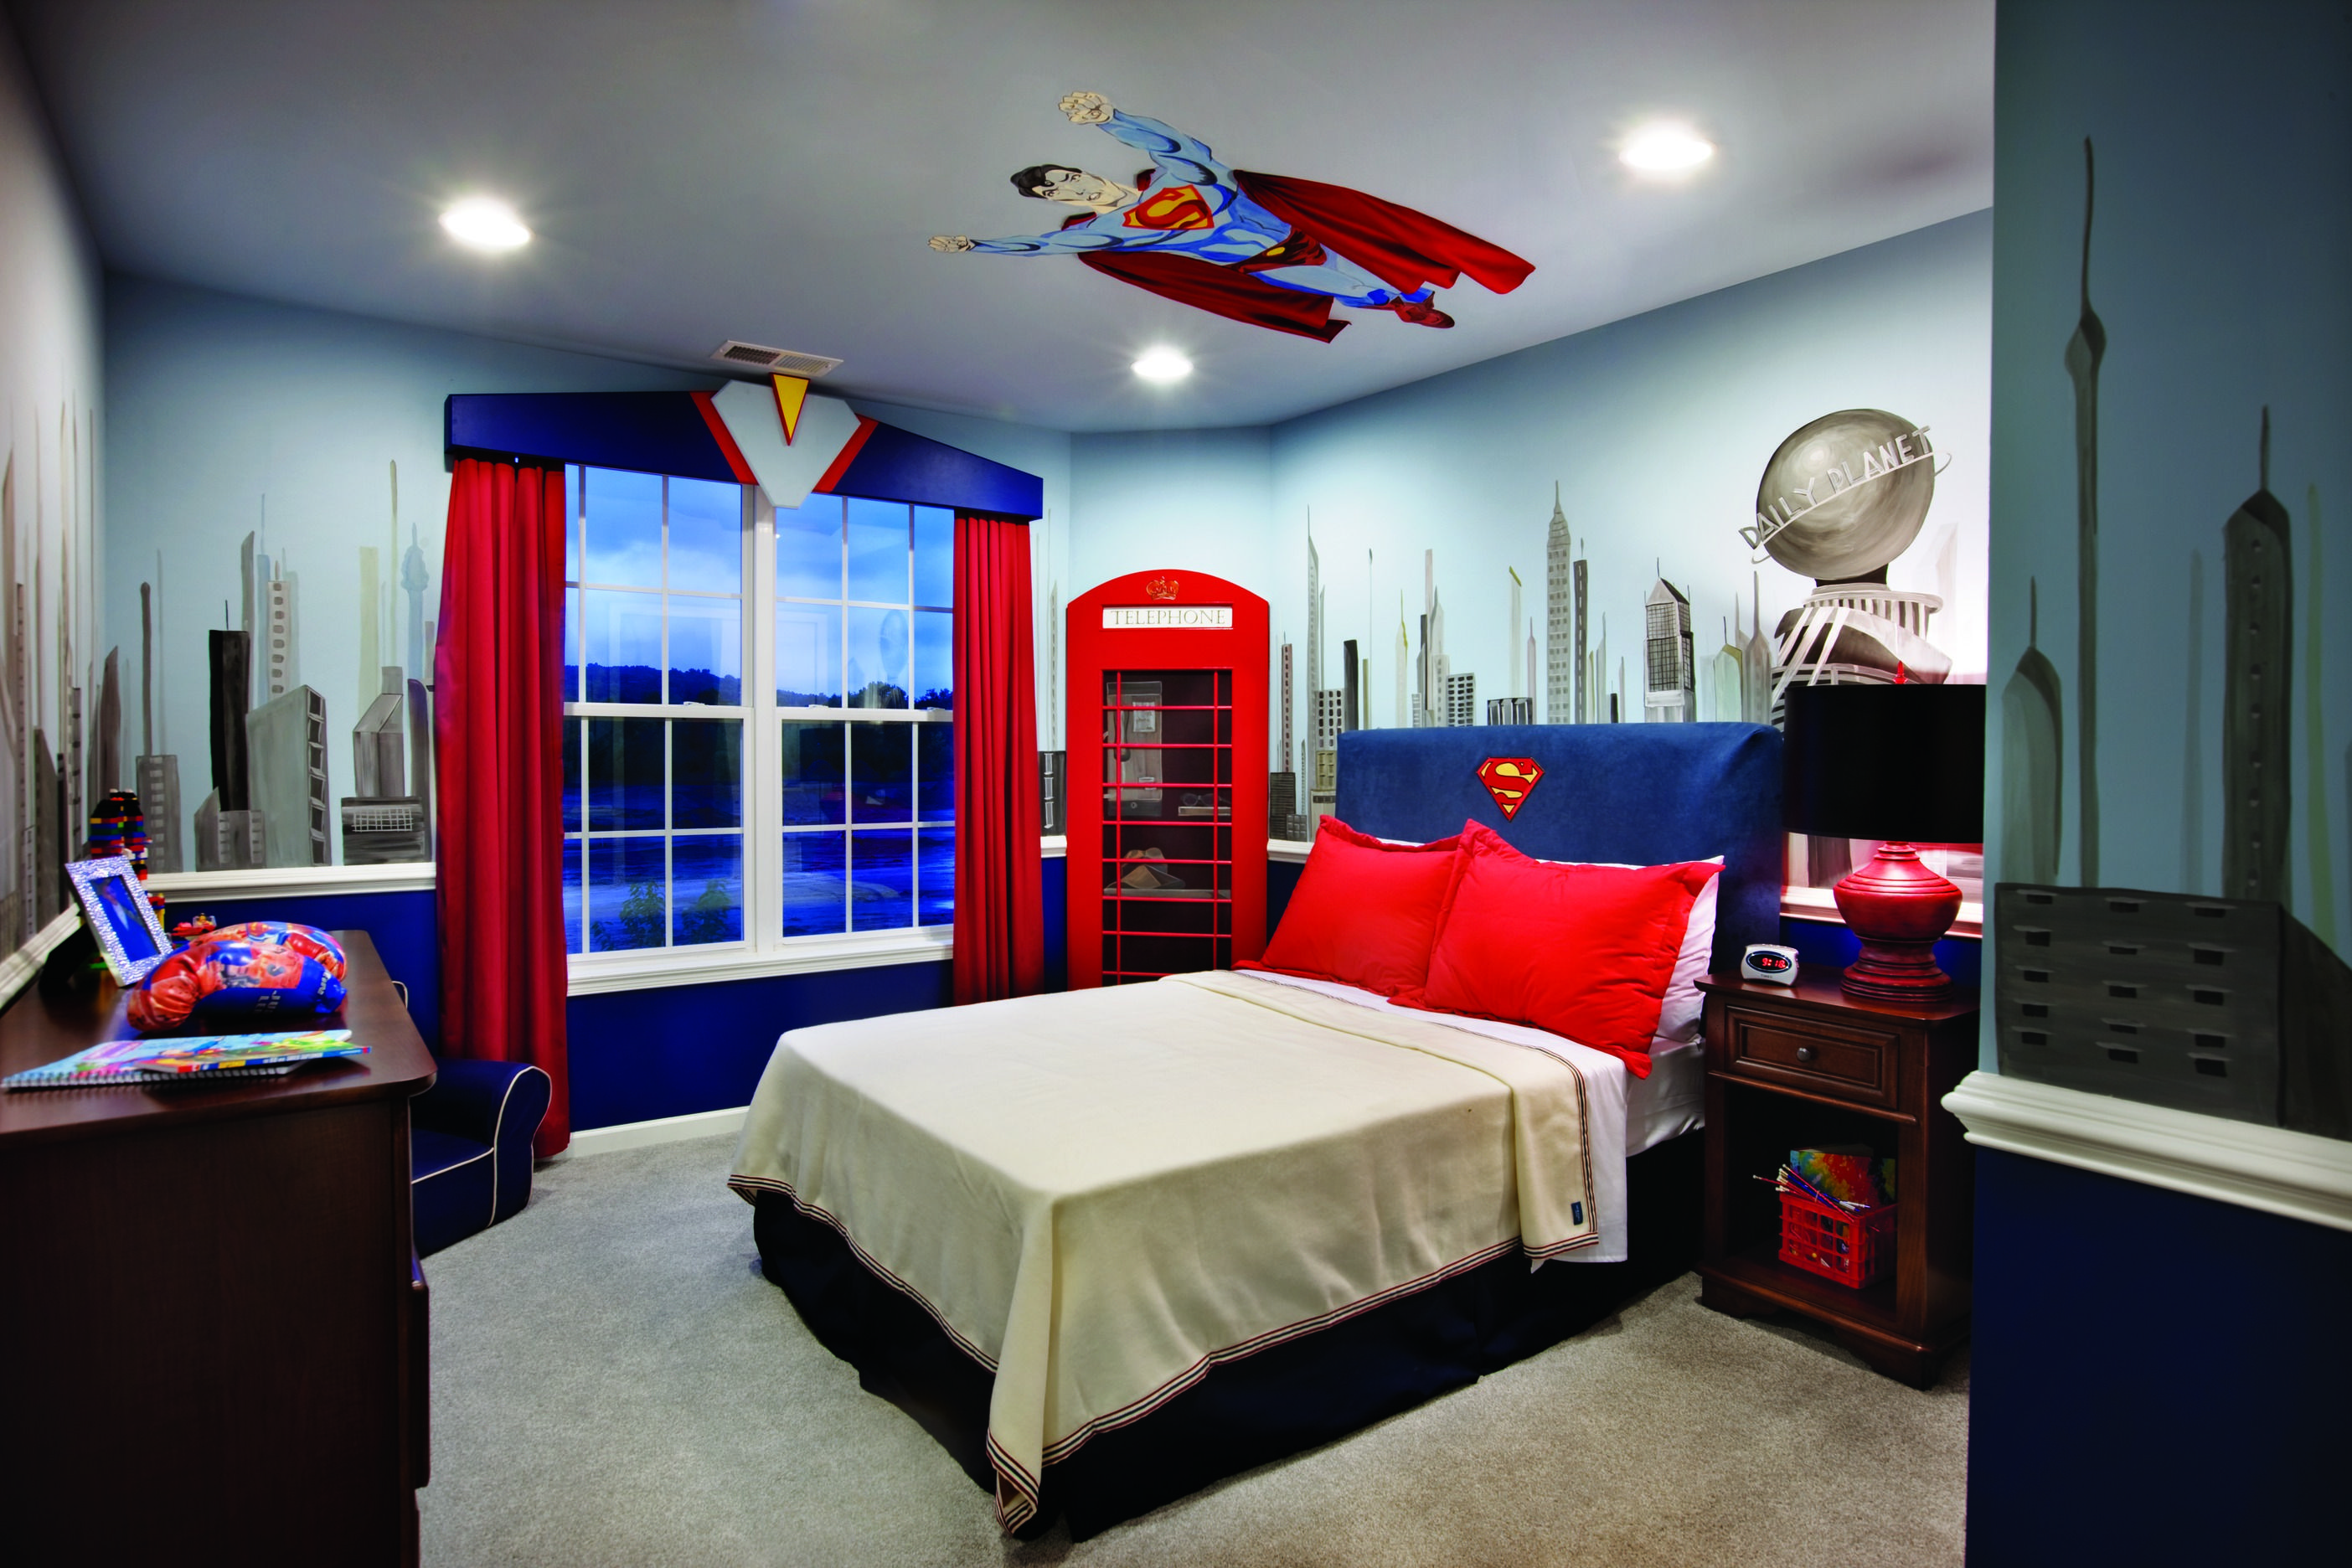 Superman Saves The Day In This Super Cool Bedroom